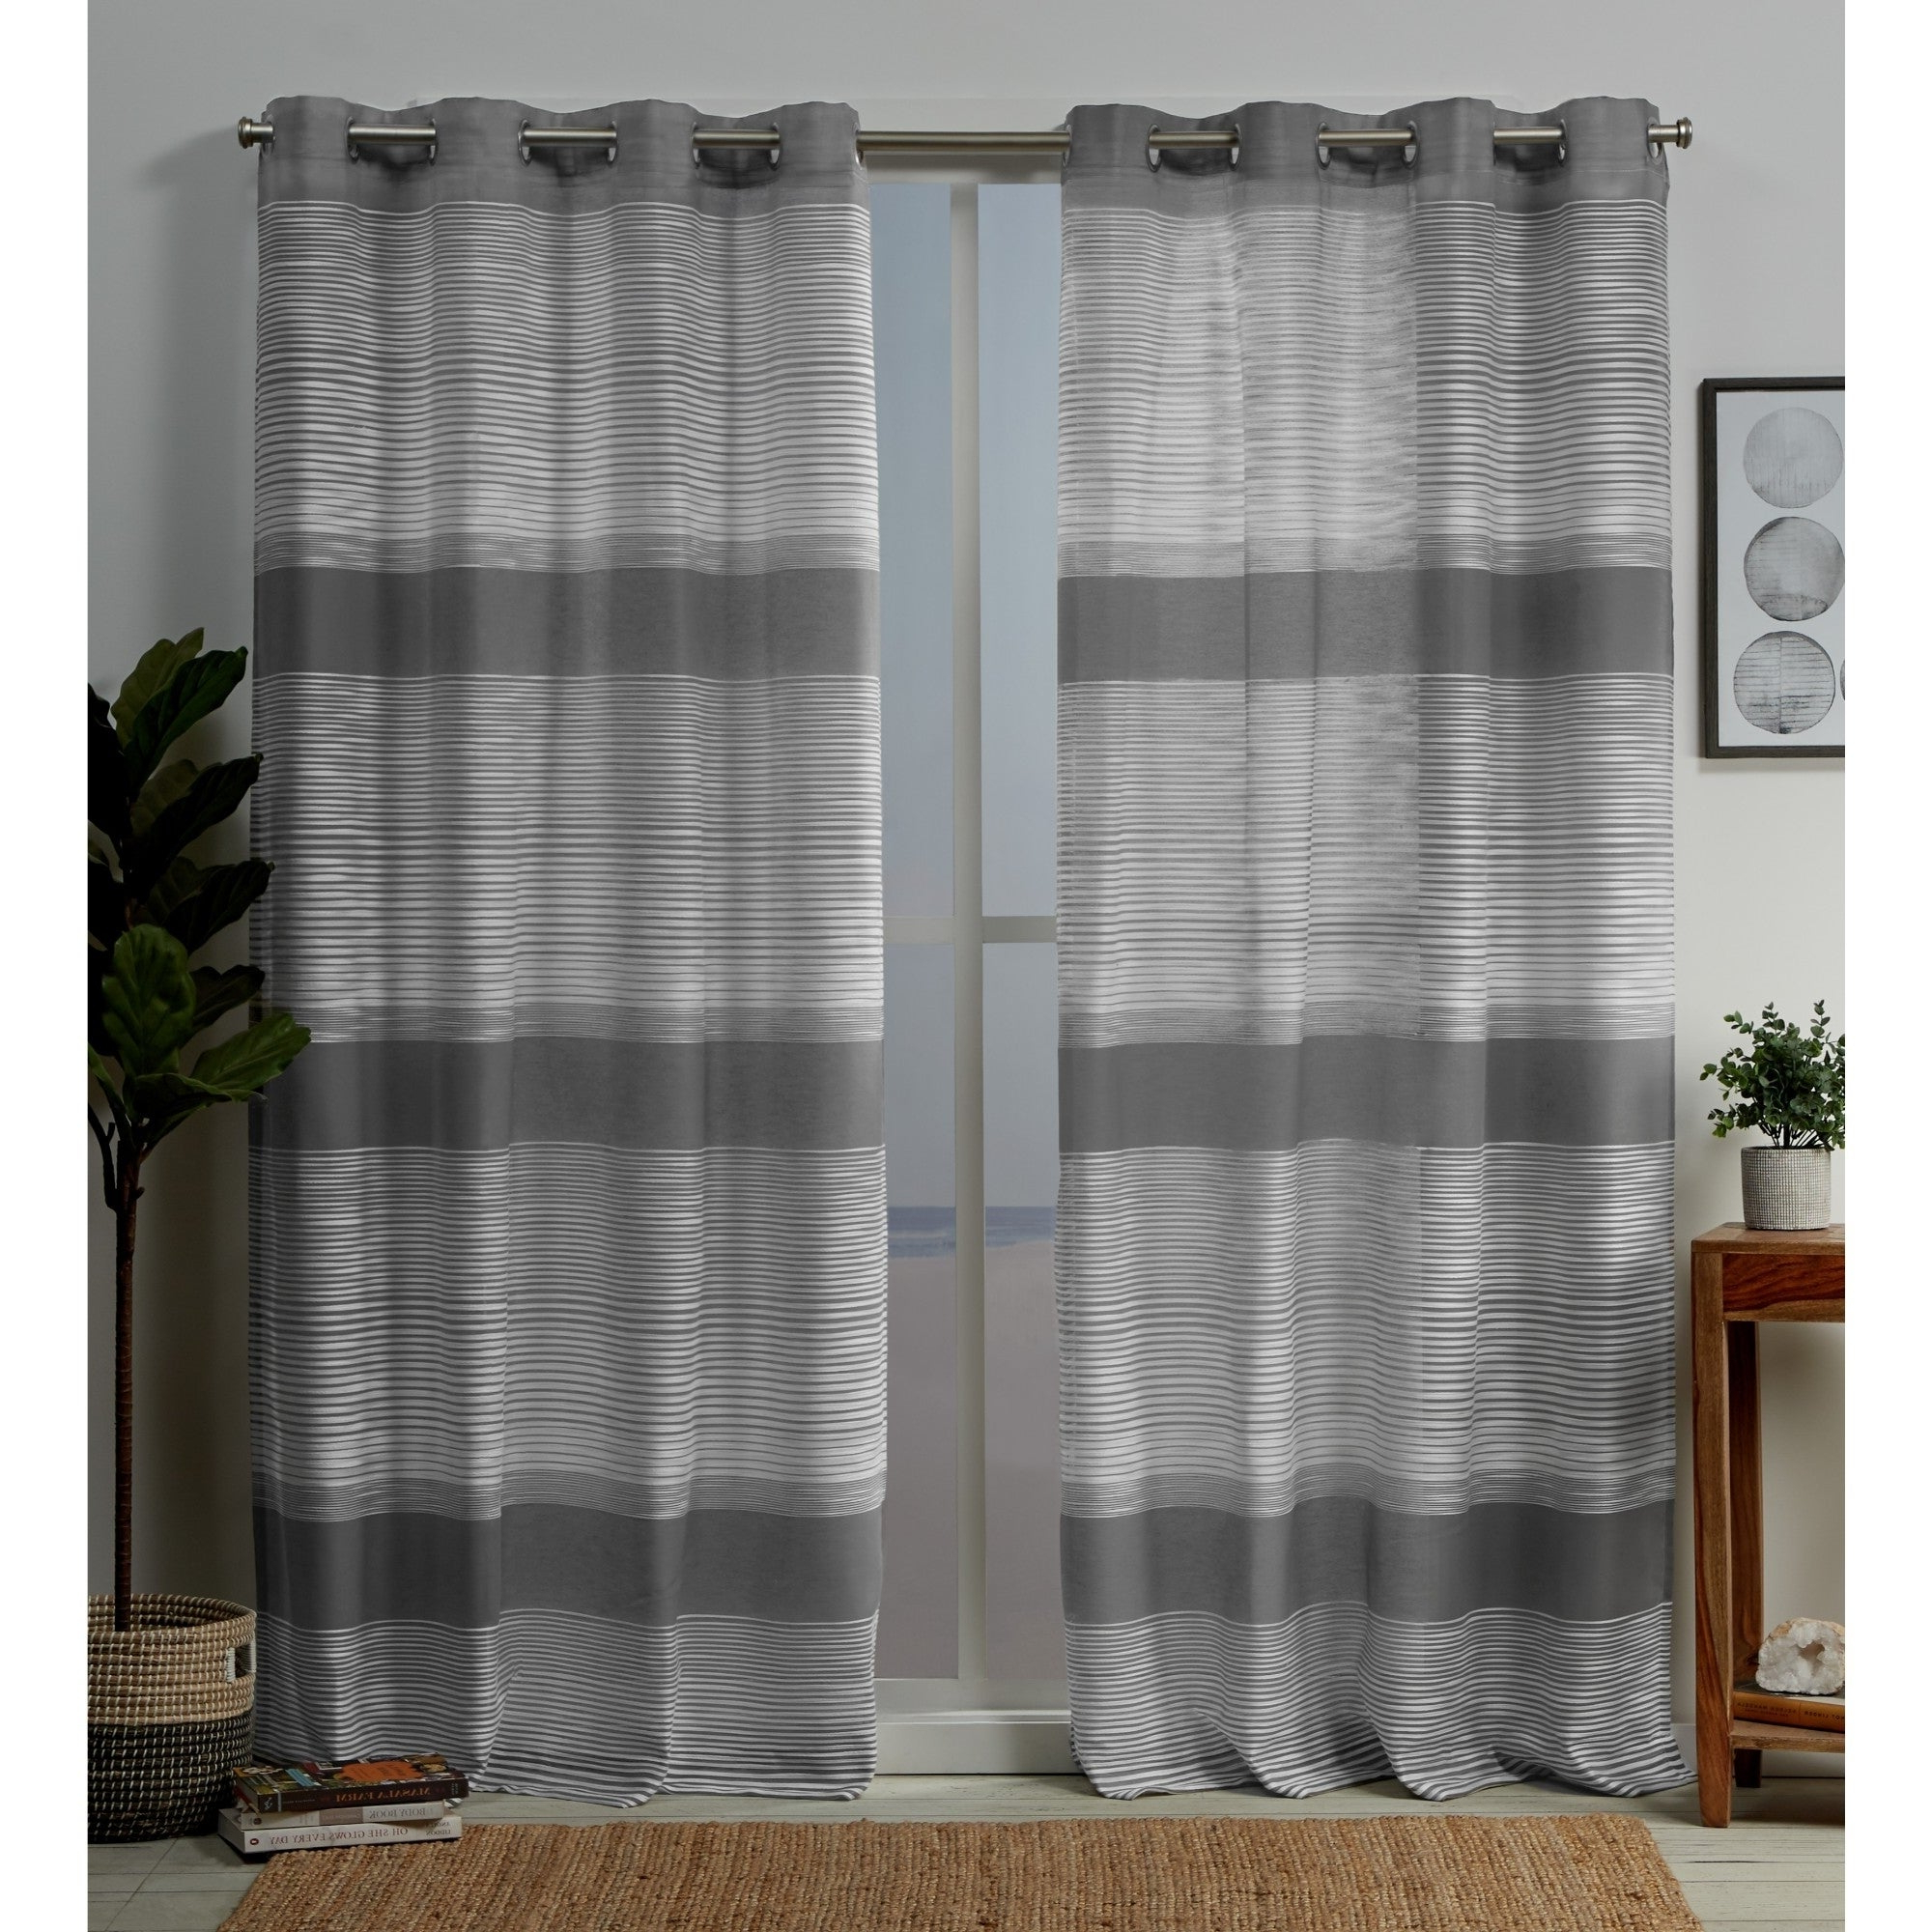 Ocean Striped Window Curtain Panel Pairs With Grommet Top Intended For Favorite Copper Grove Panagyurishte Striped Grommet Top Curtain Panel Pair (View 6 of 20)